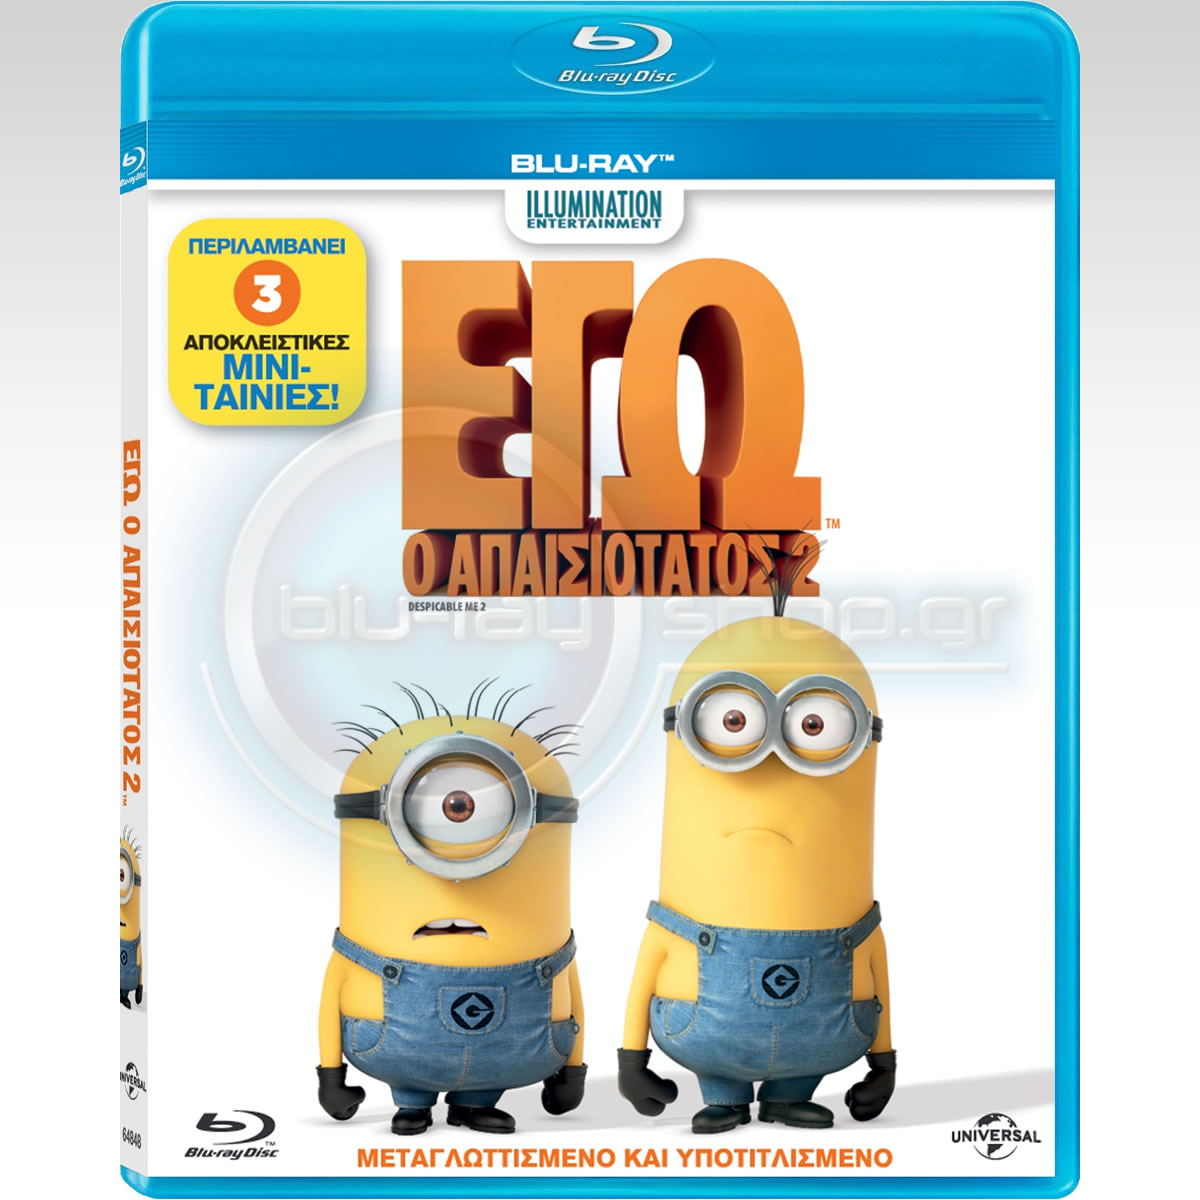 DESPICABLE ME 2 - ���, � ������������ 2 (BLU-RAY) & ���������������